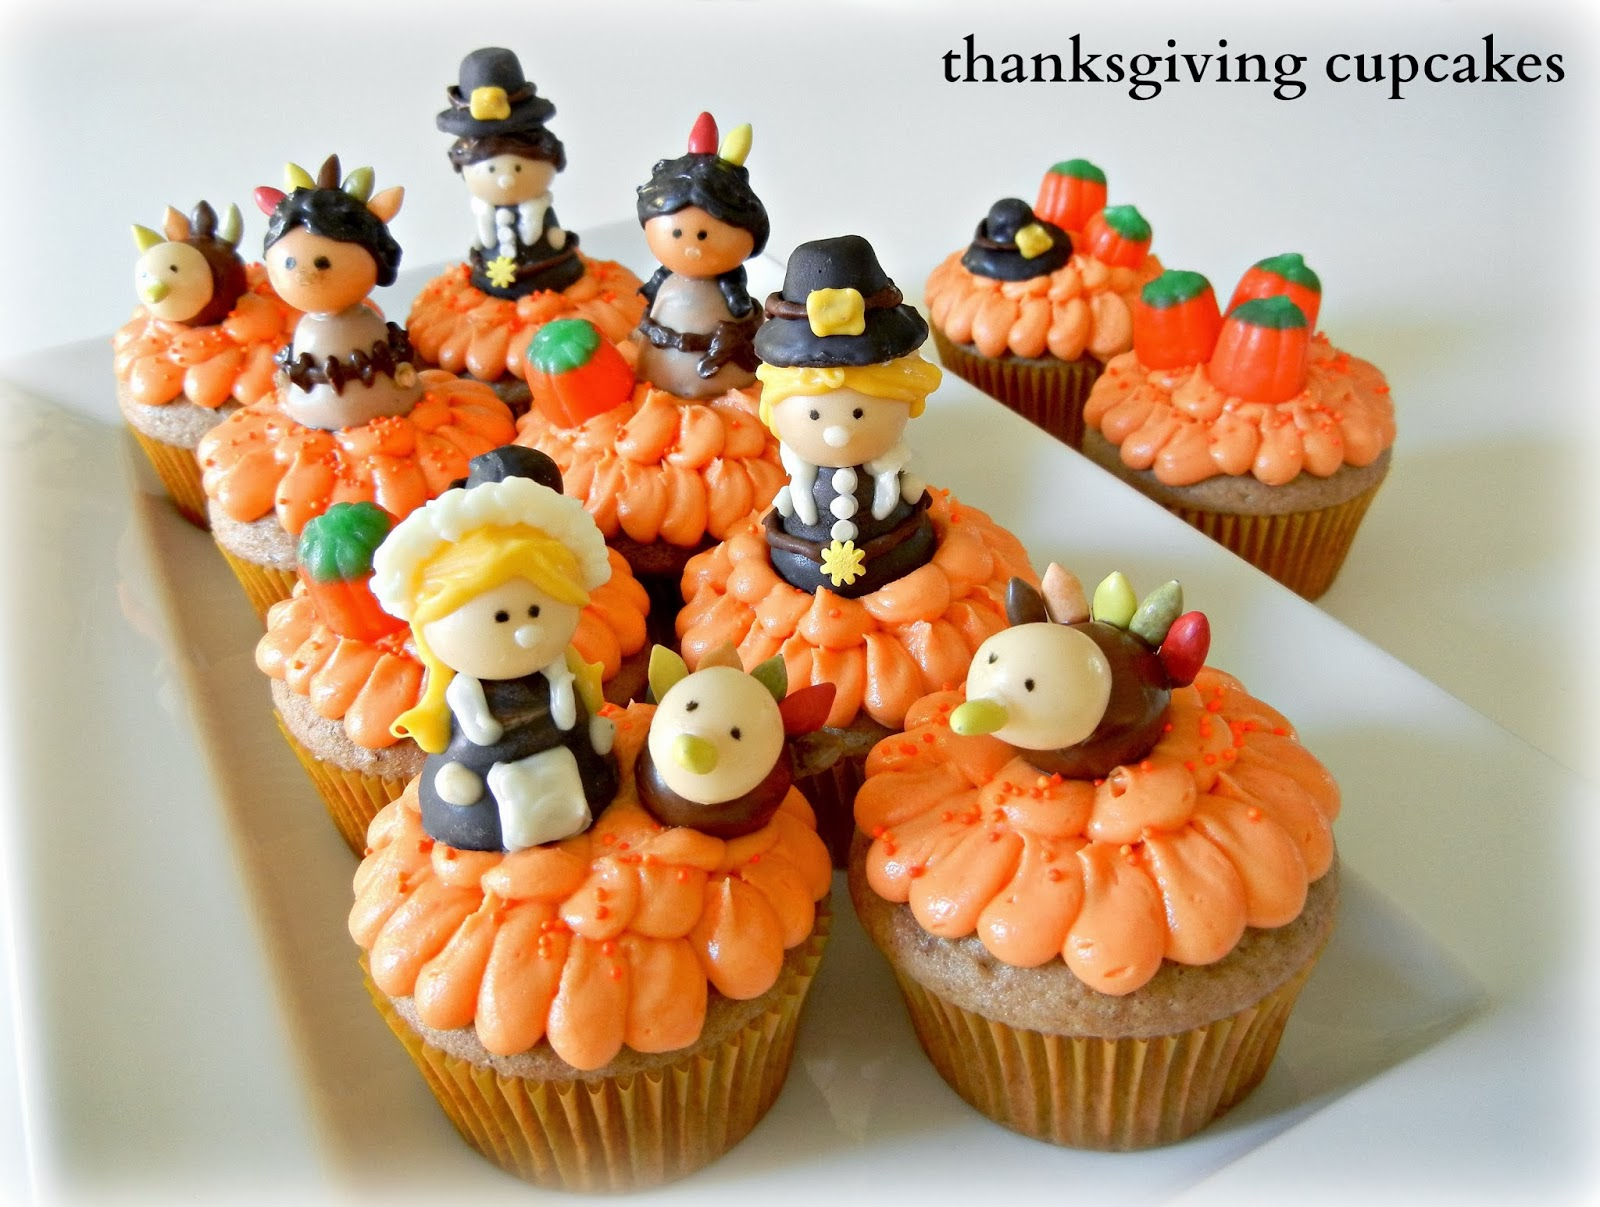 Thanksgiving cupcake decorations - Thanksgiving Cupcakes With Pilgrim American Indian And Turkey Candy Toppers